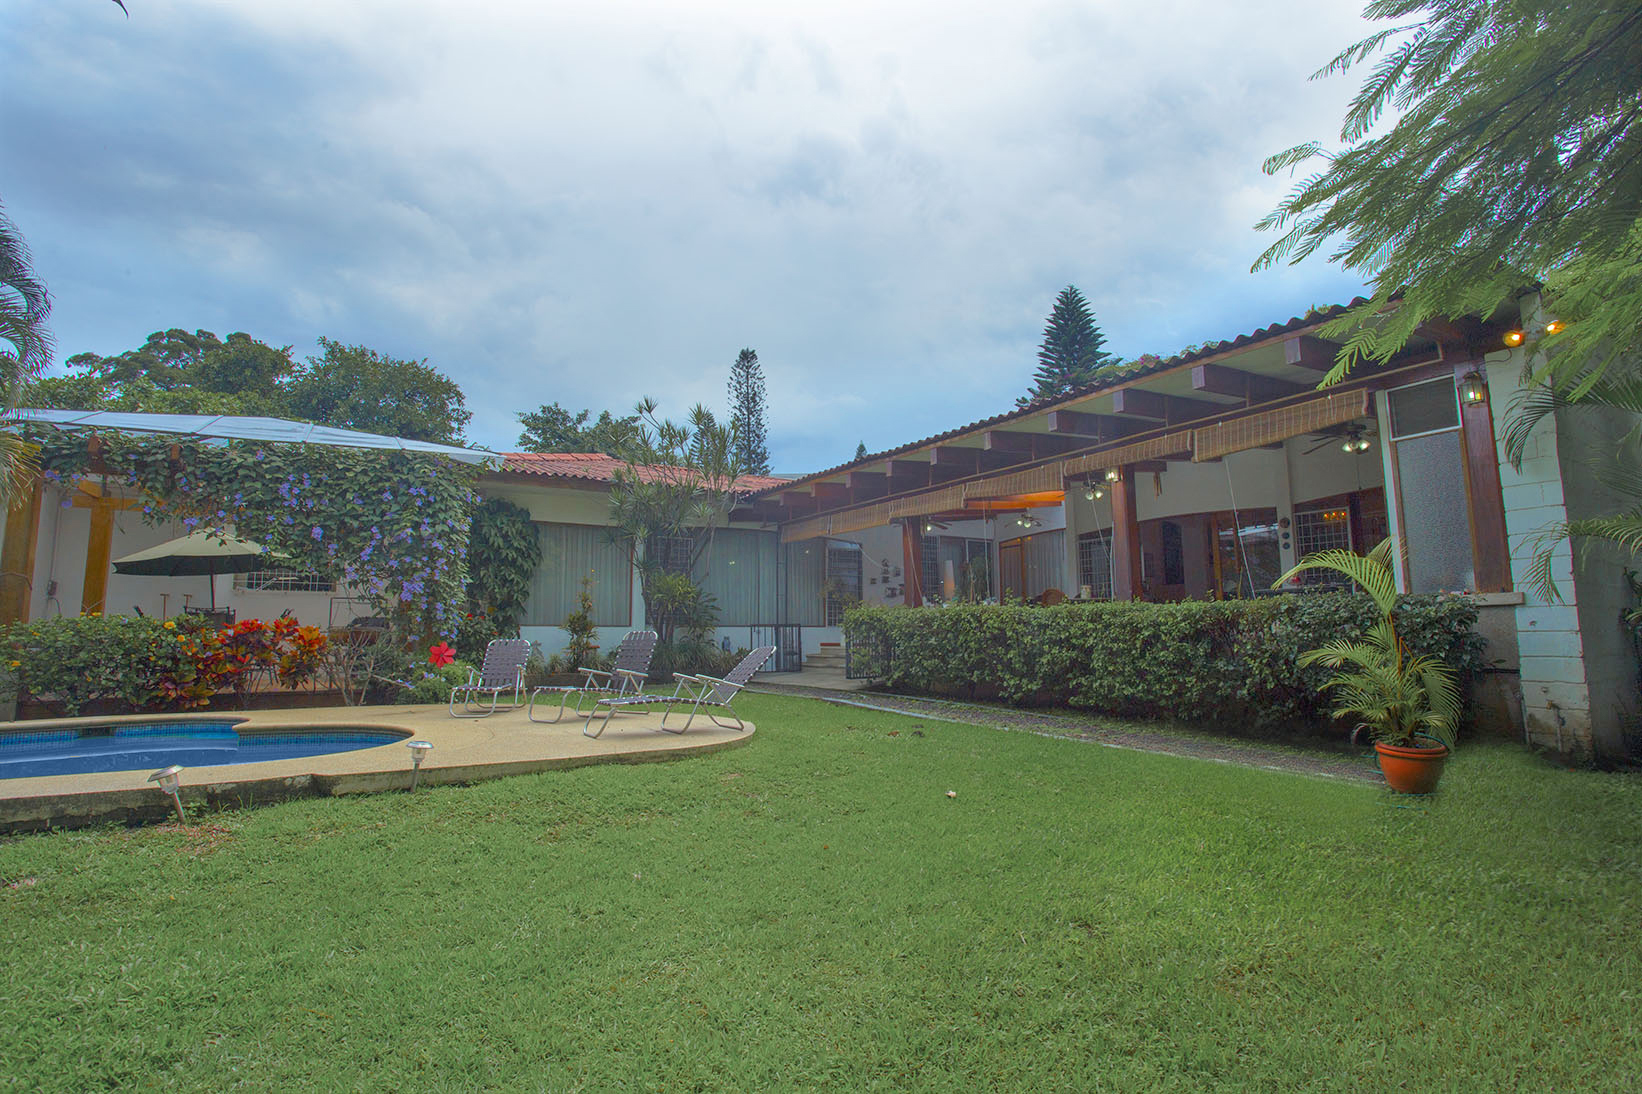 Single Family Home for Sale at Pool Residence in Escazu Escazu, San Jose, Costa Rica